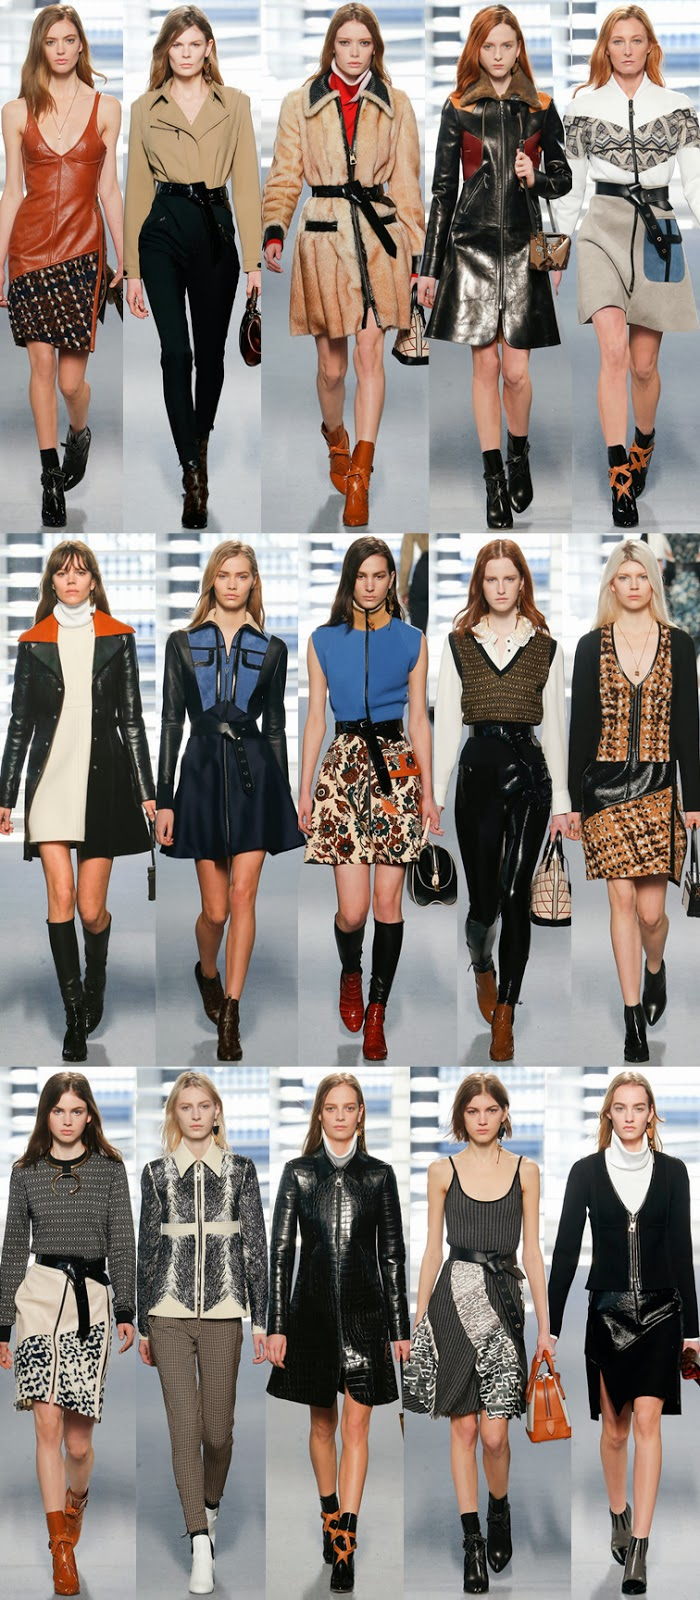 Louis Vuitton fall winter 2014 runway collection, PFW, Paris fashion week, FW14, AW14, Nicolas Ghesquière